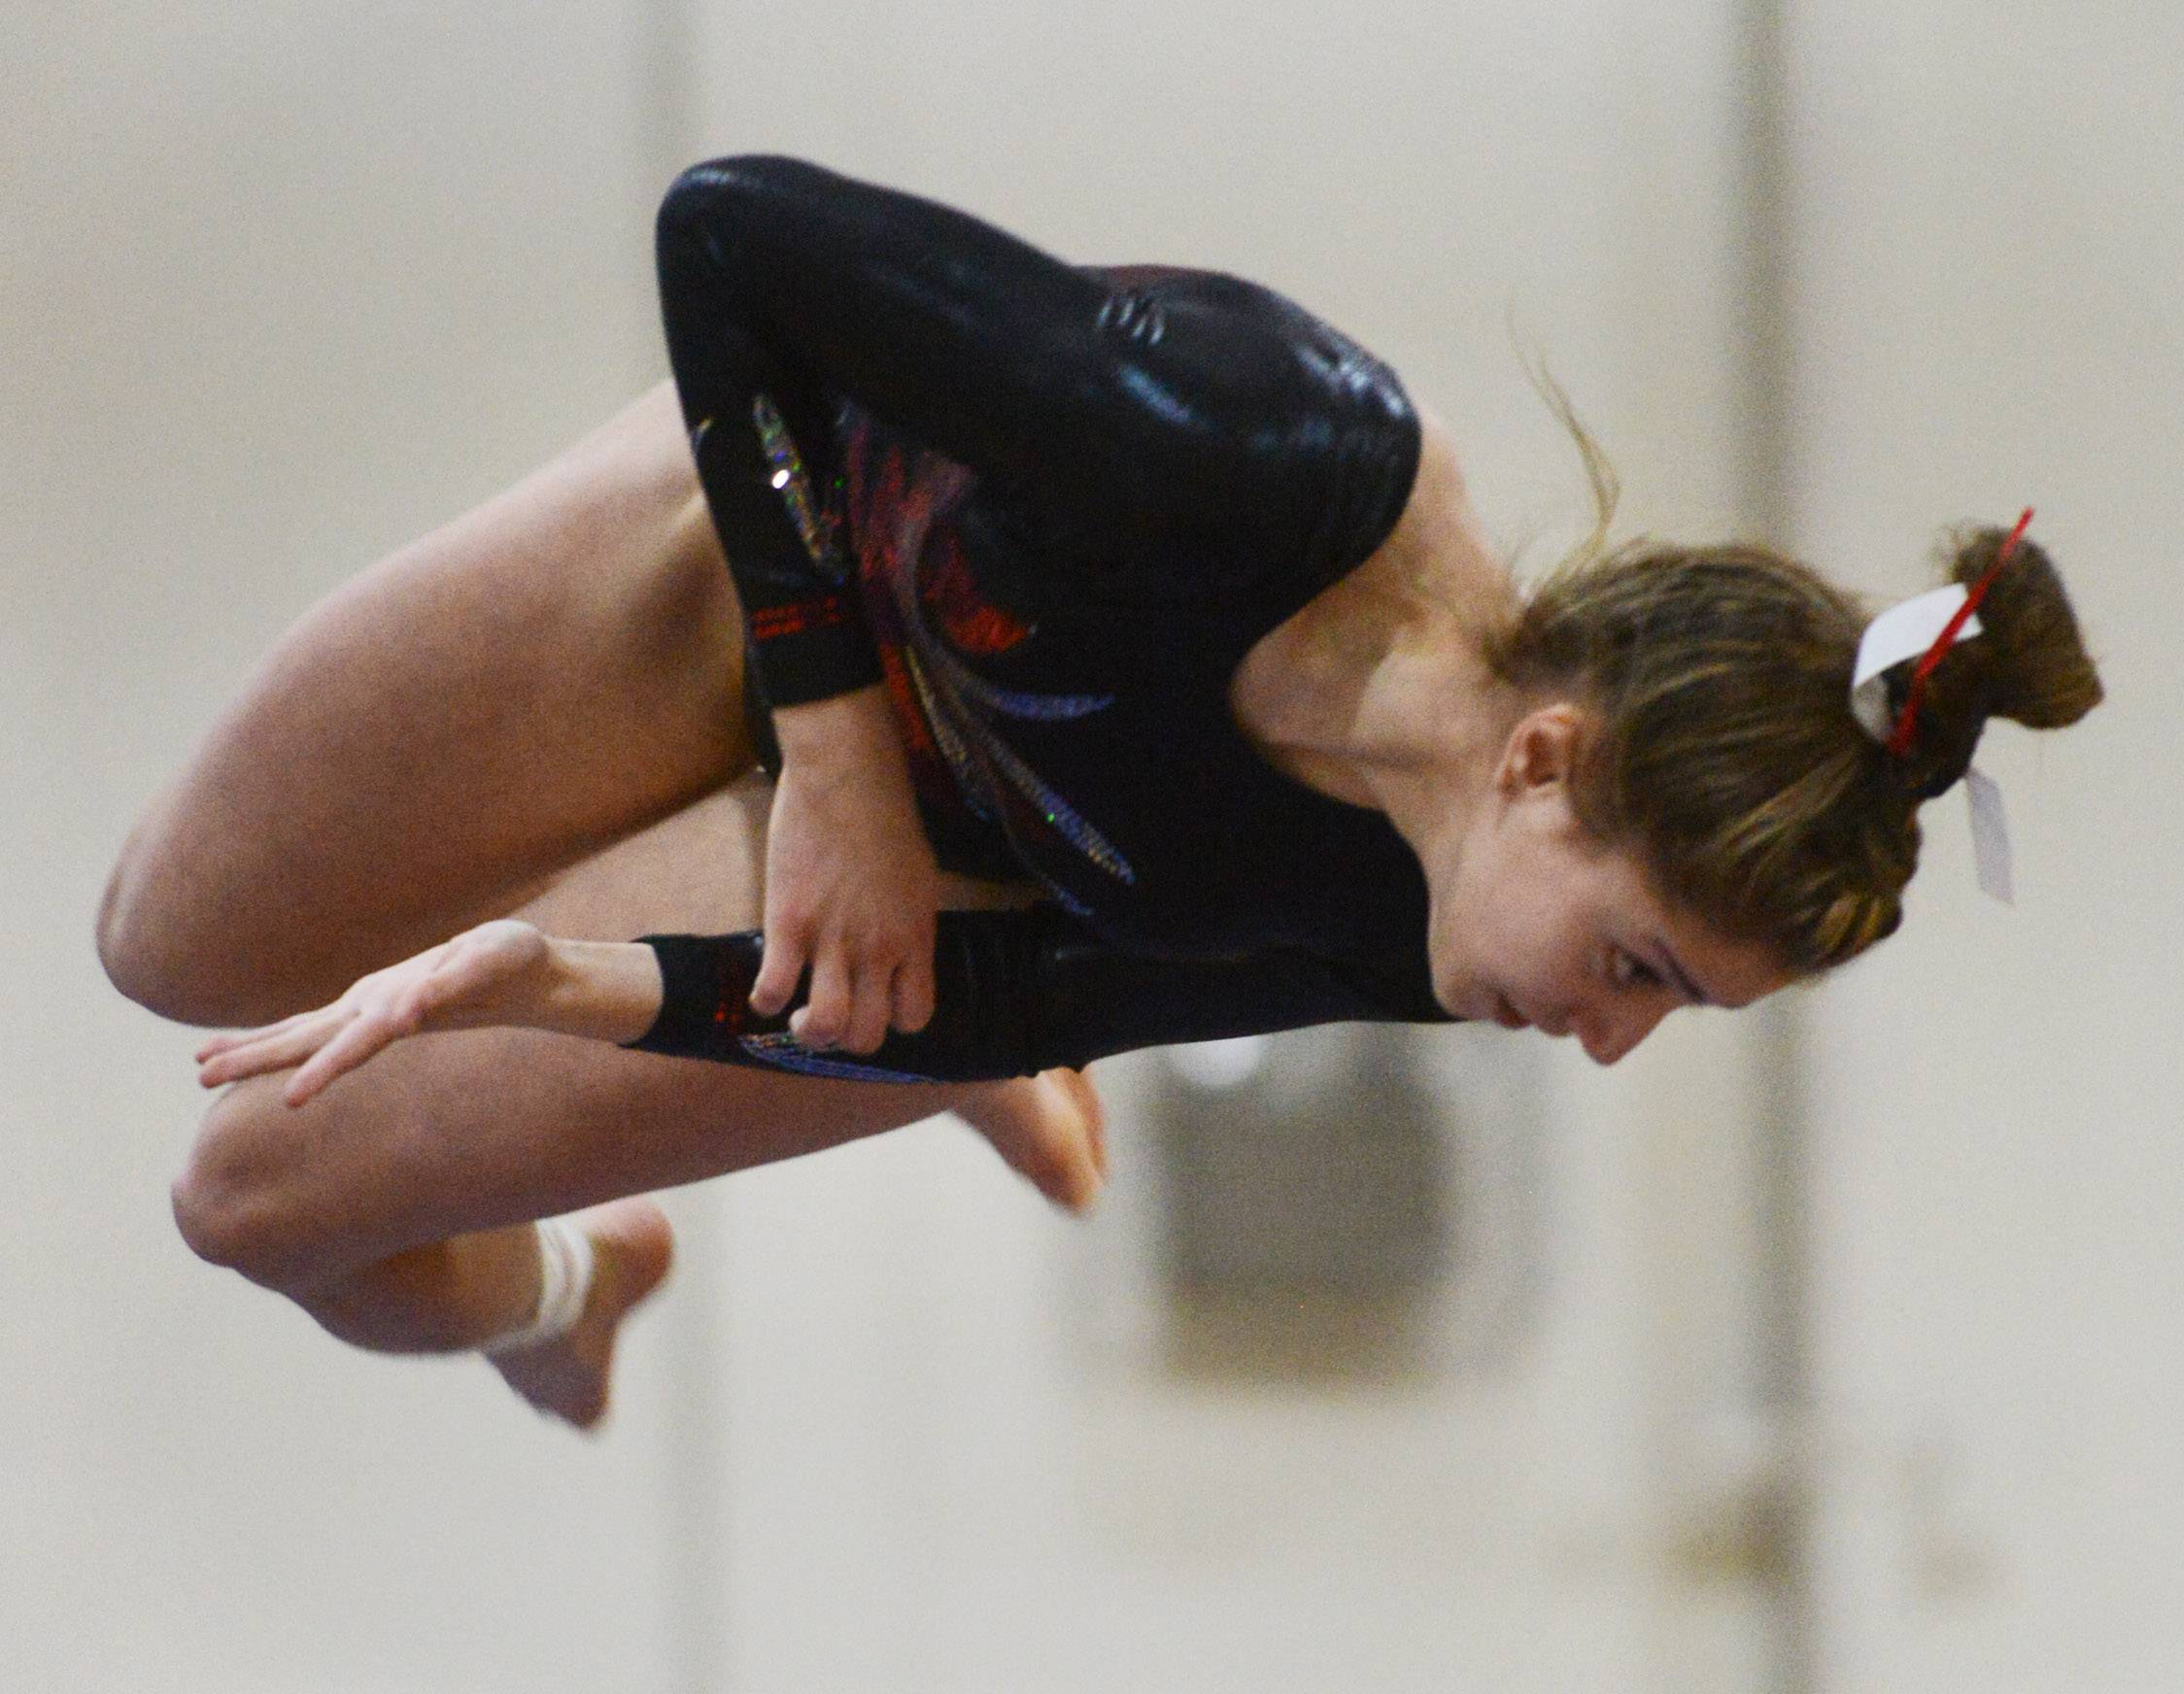 Naperville Central's Katie Petro dismounts from the balance beam during the Fremd girls gymnastics invitational in Palatine on Saturday.